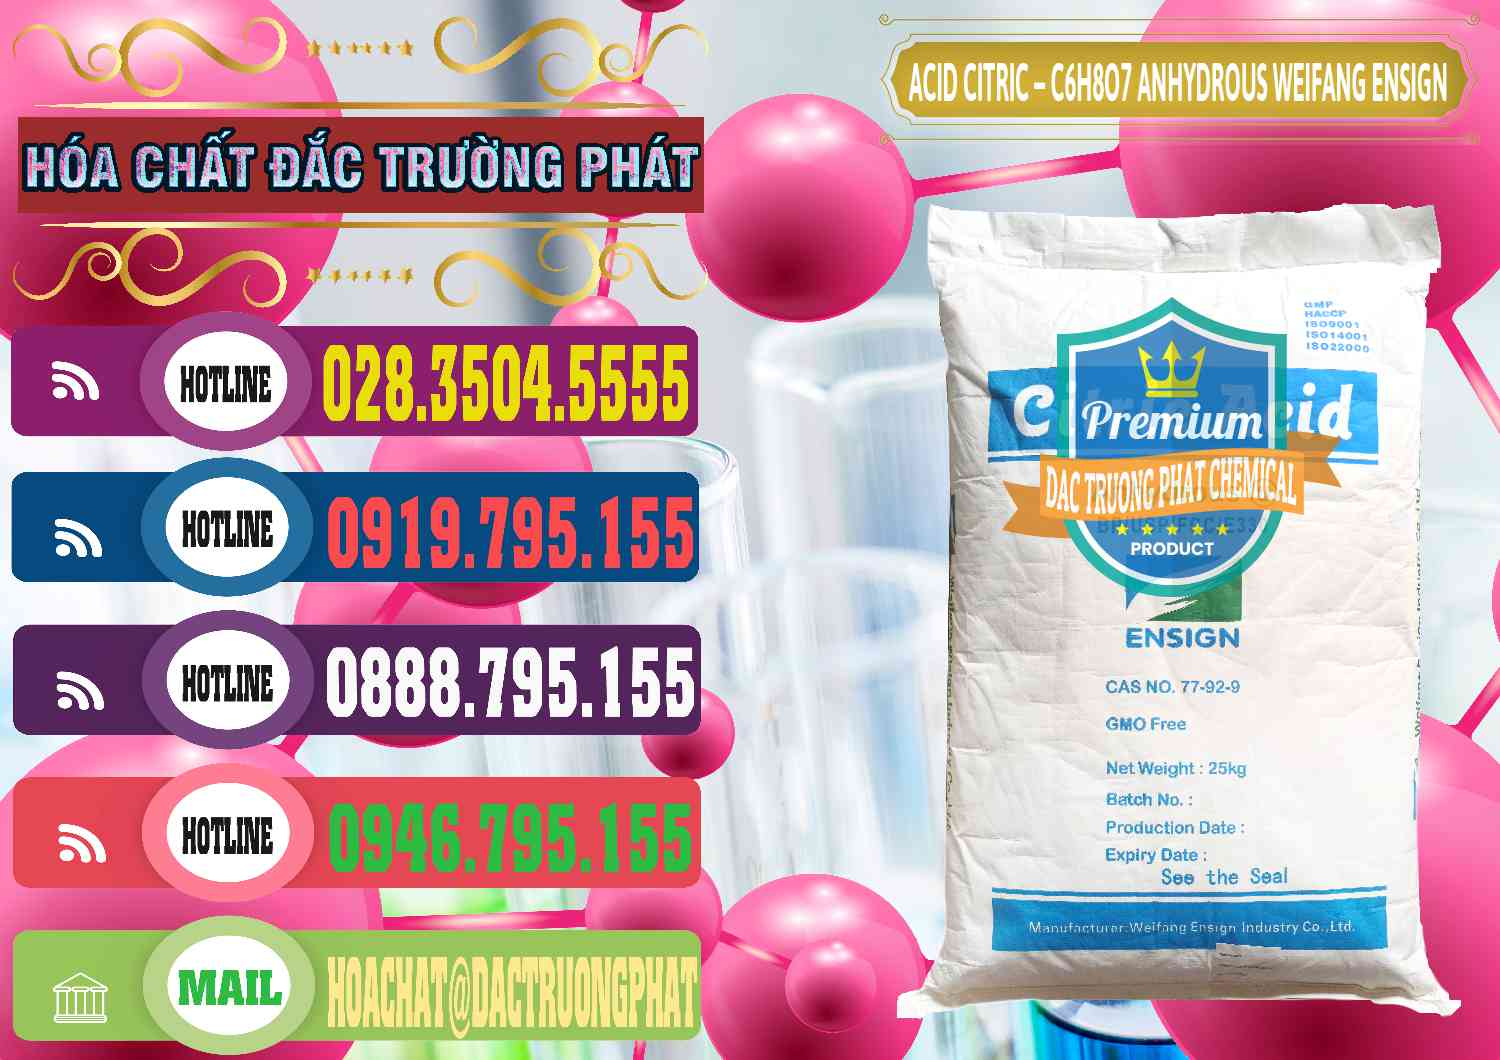 Cung cấp ( bán ) Citric Axit - Citric Crystals Anhydrous Khan Thực Phẩm Food Grade Weifang